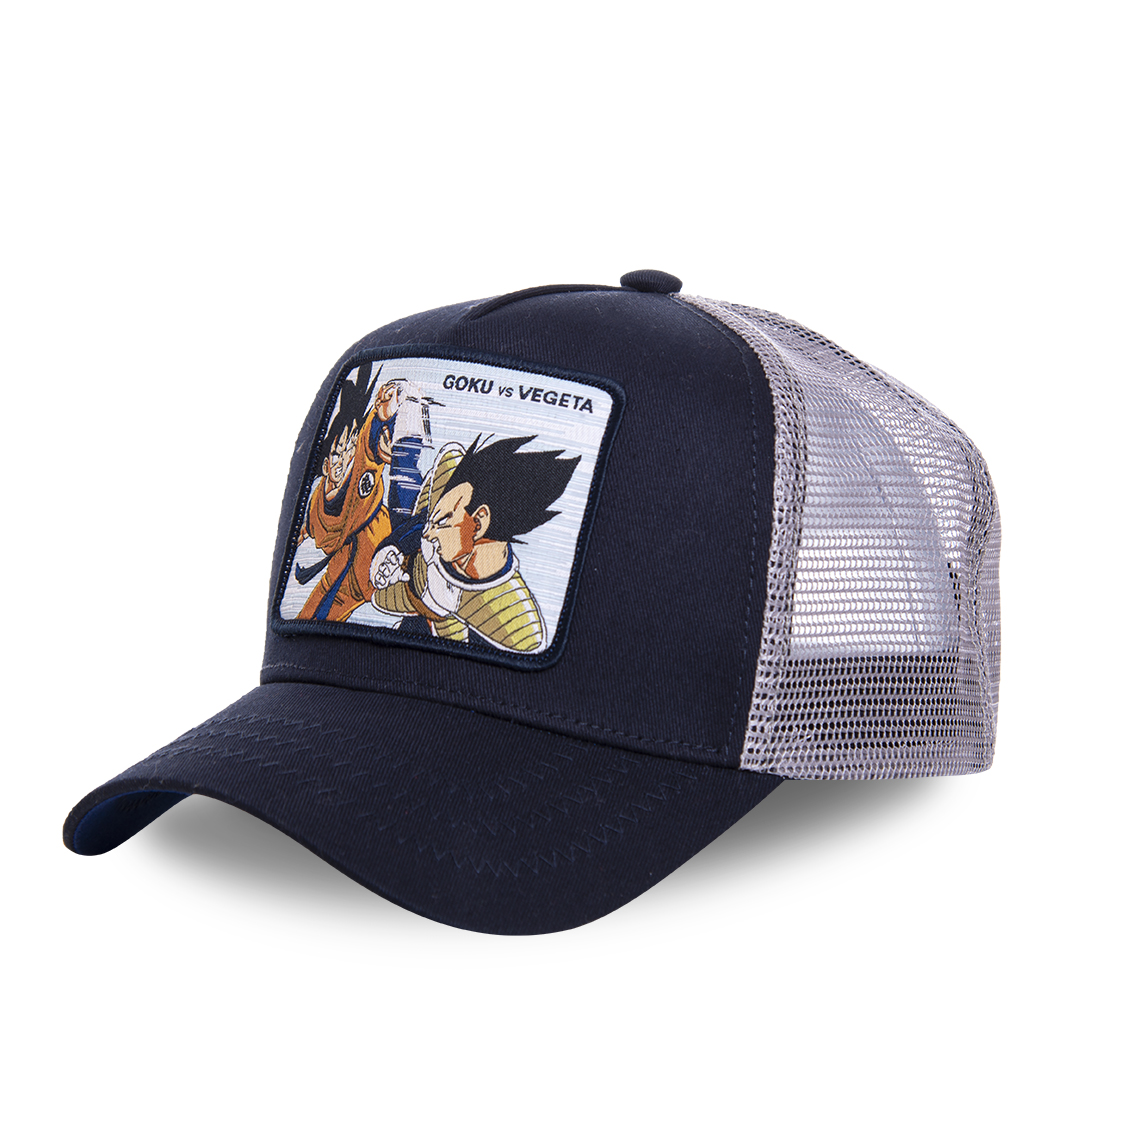 Casquette capslab dragon ball z goku vs vegeta bleu marine (photo)